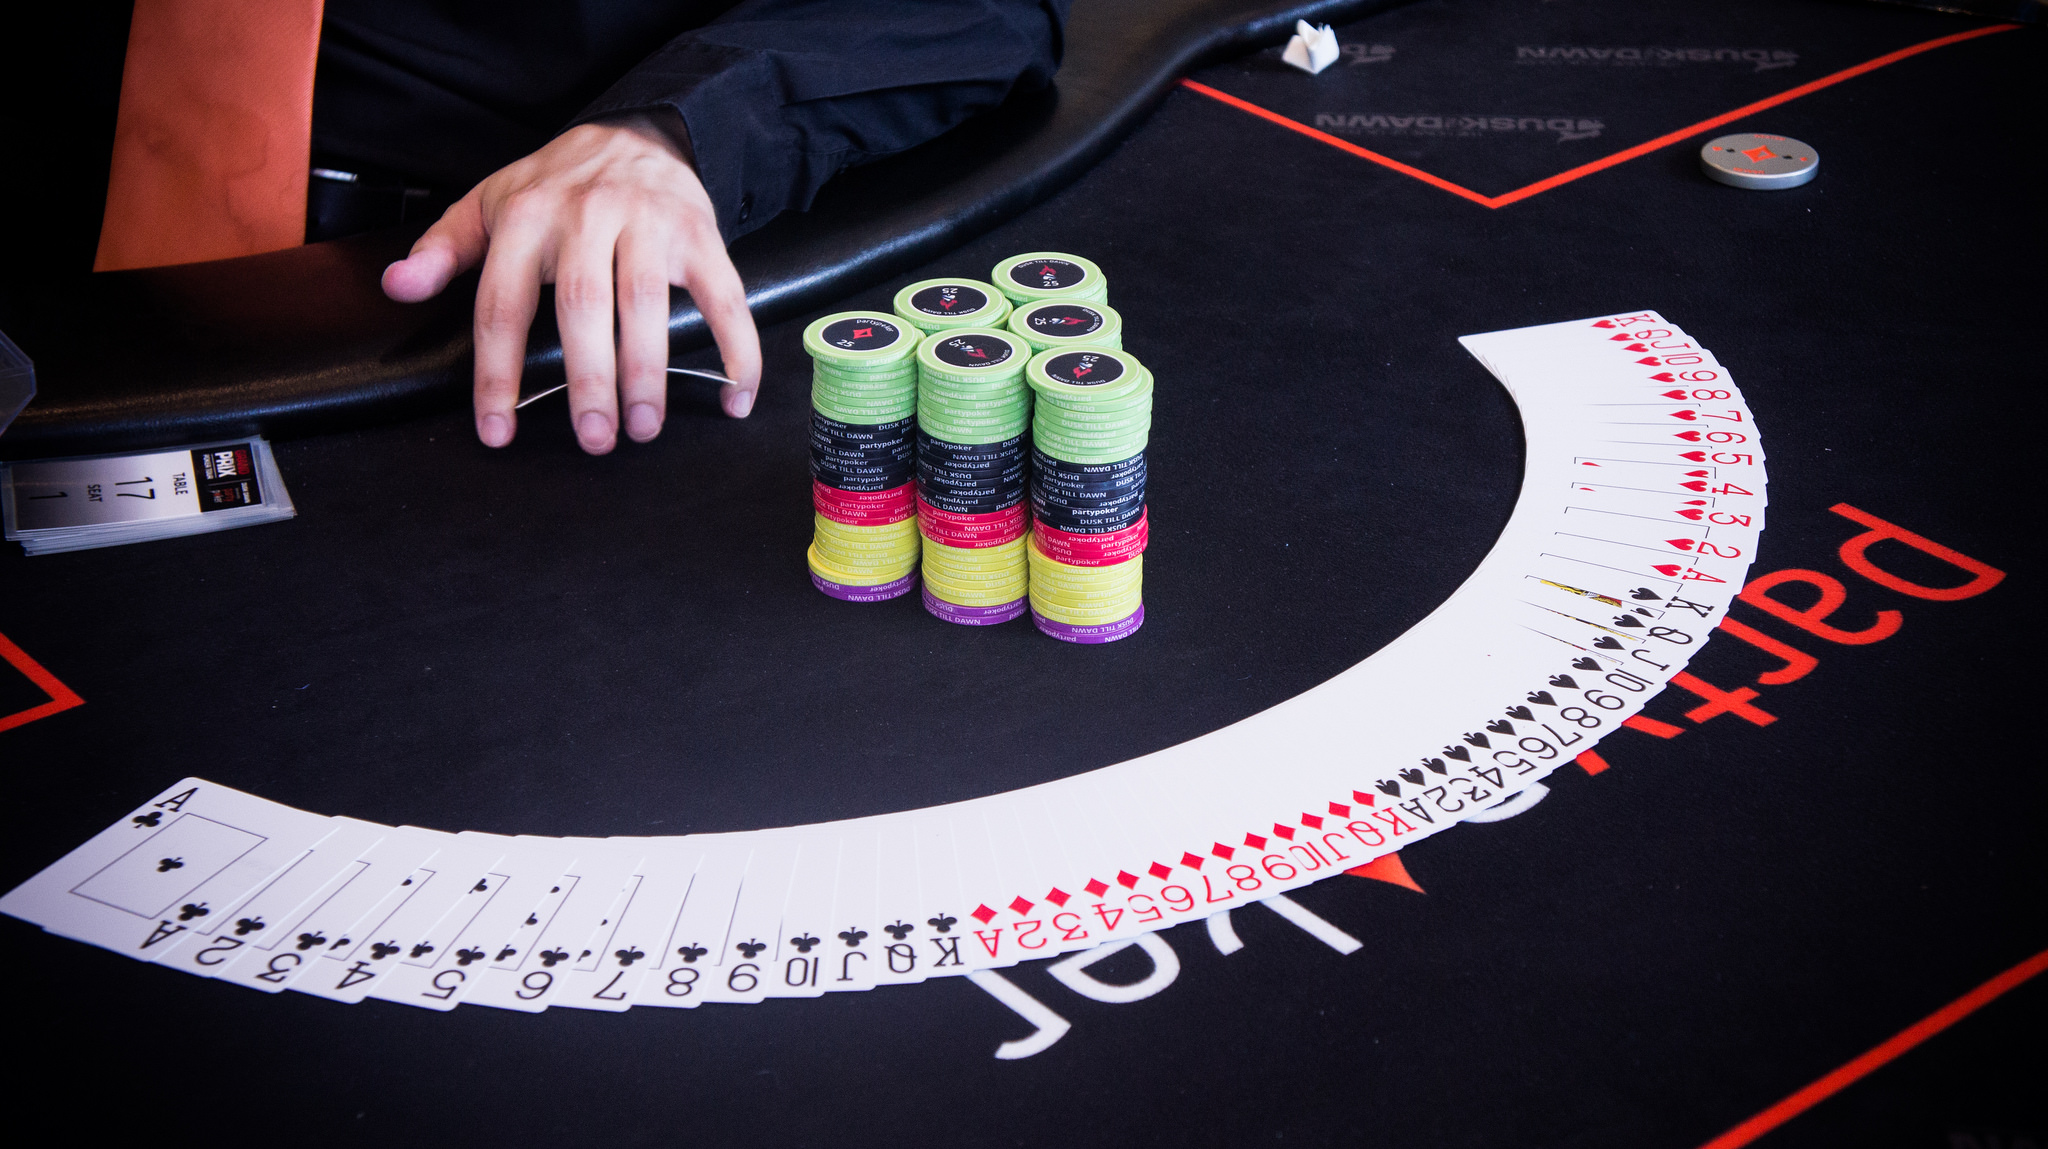 Live poker tournaments watch